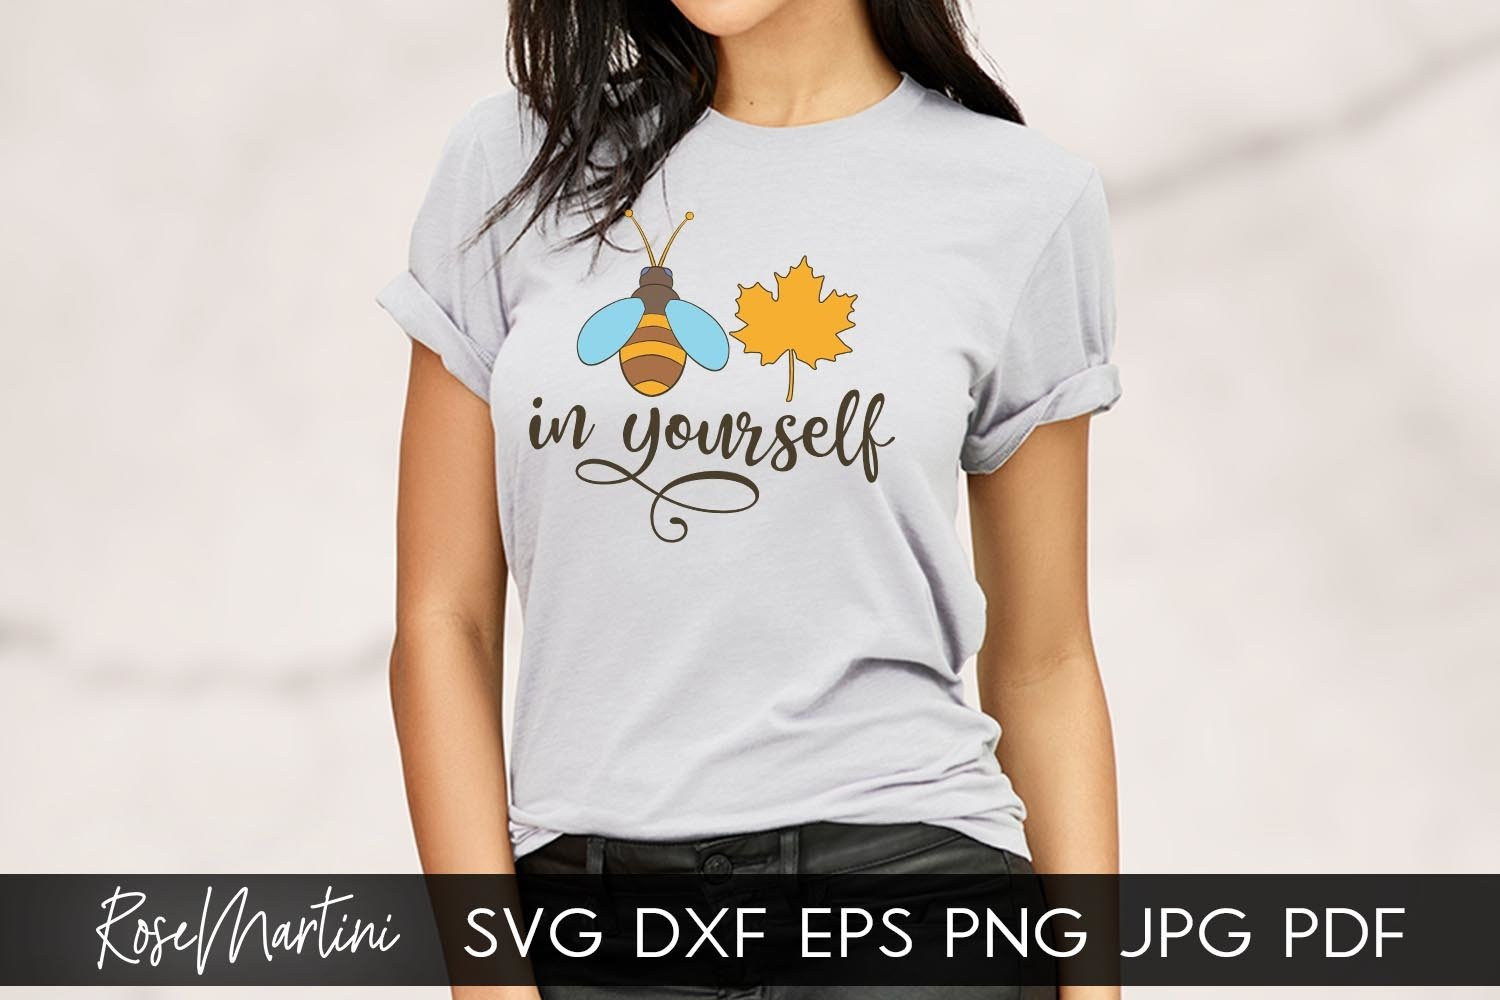 Believe in Yourself SVG Queen Bee SVG Bee Pun Bumble Bee SVG example image 3